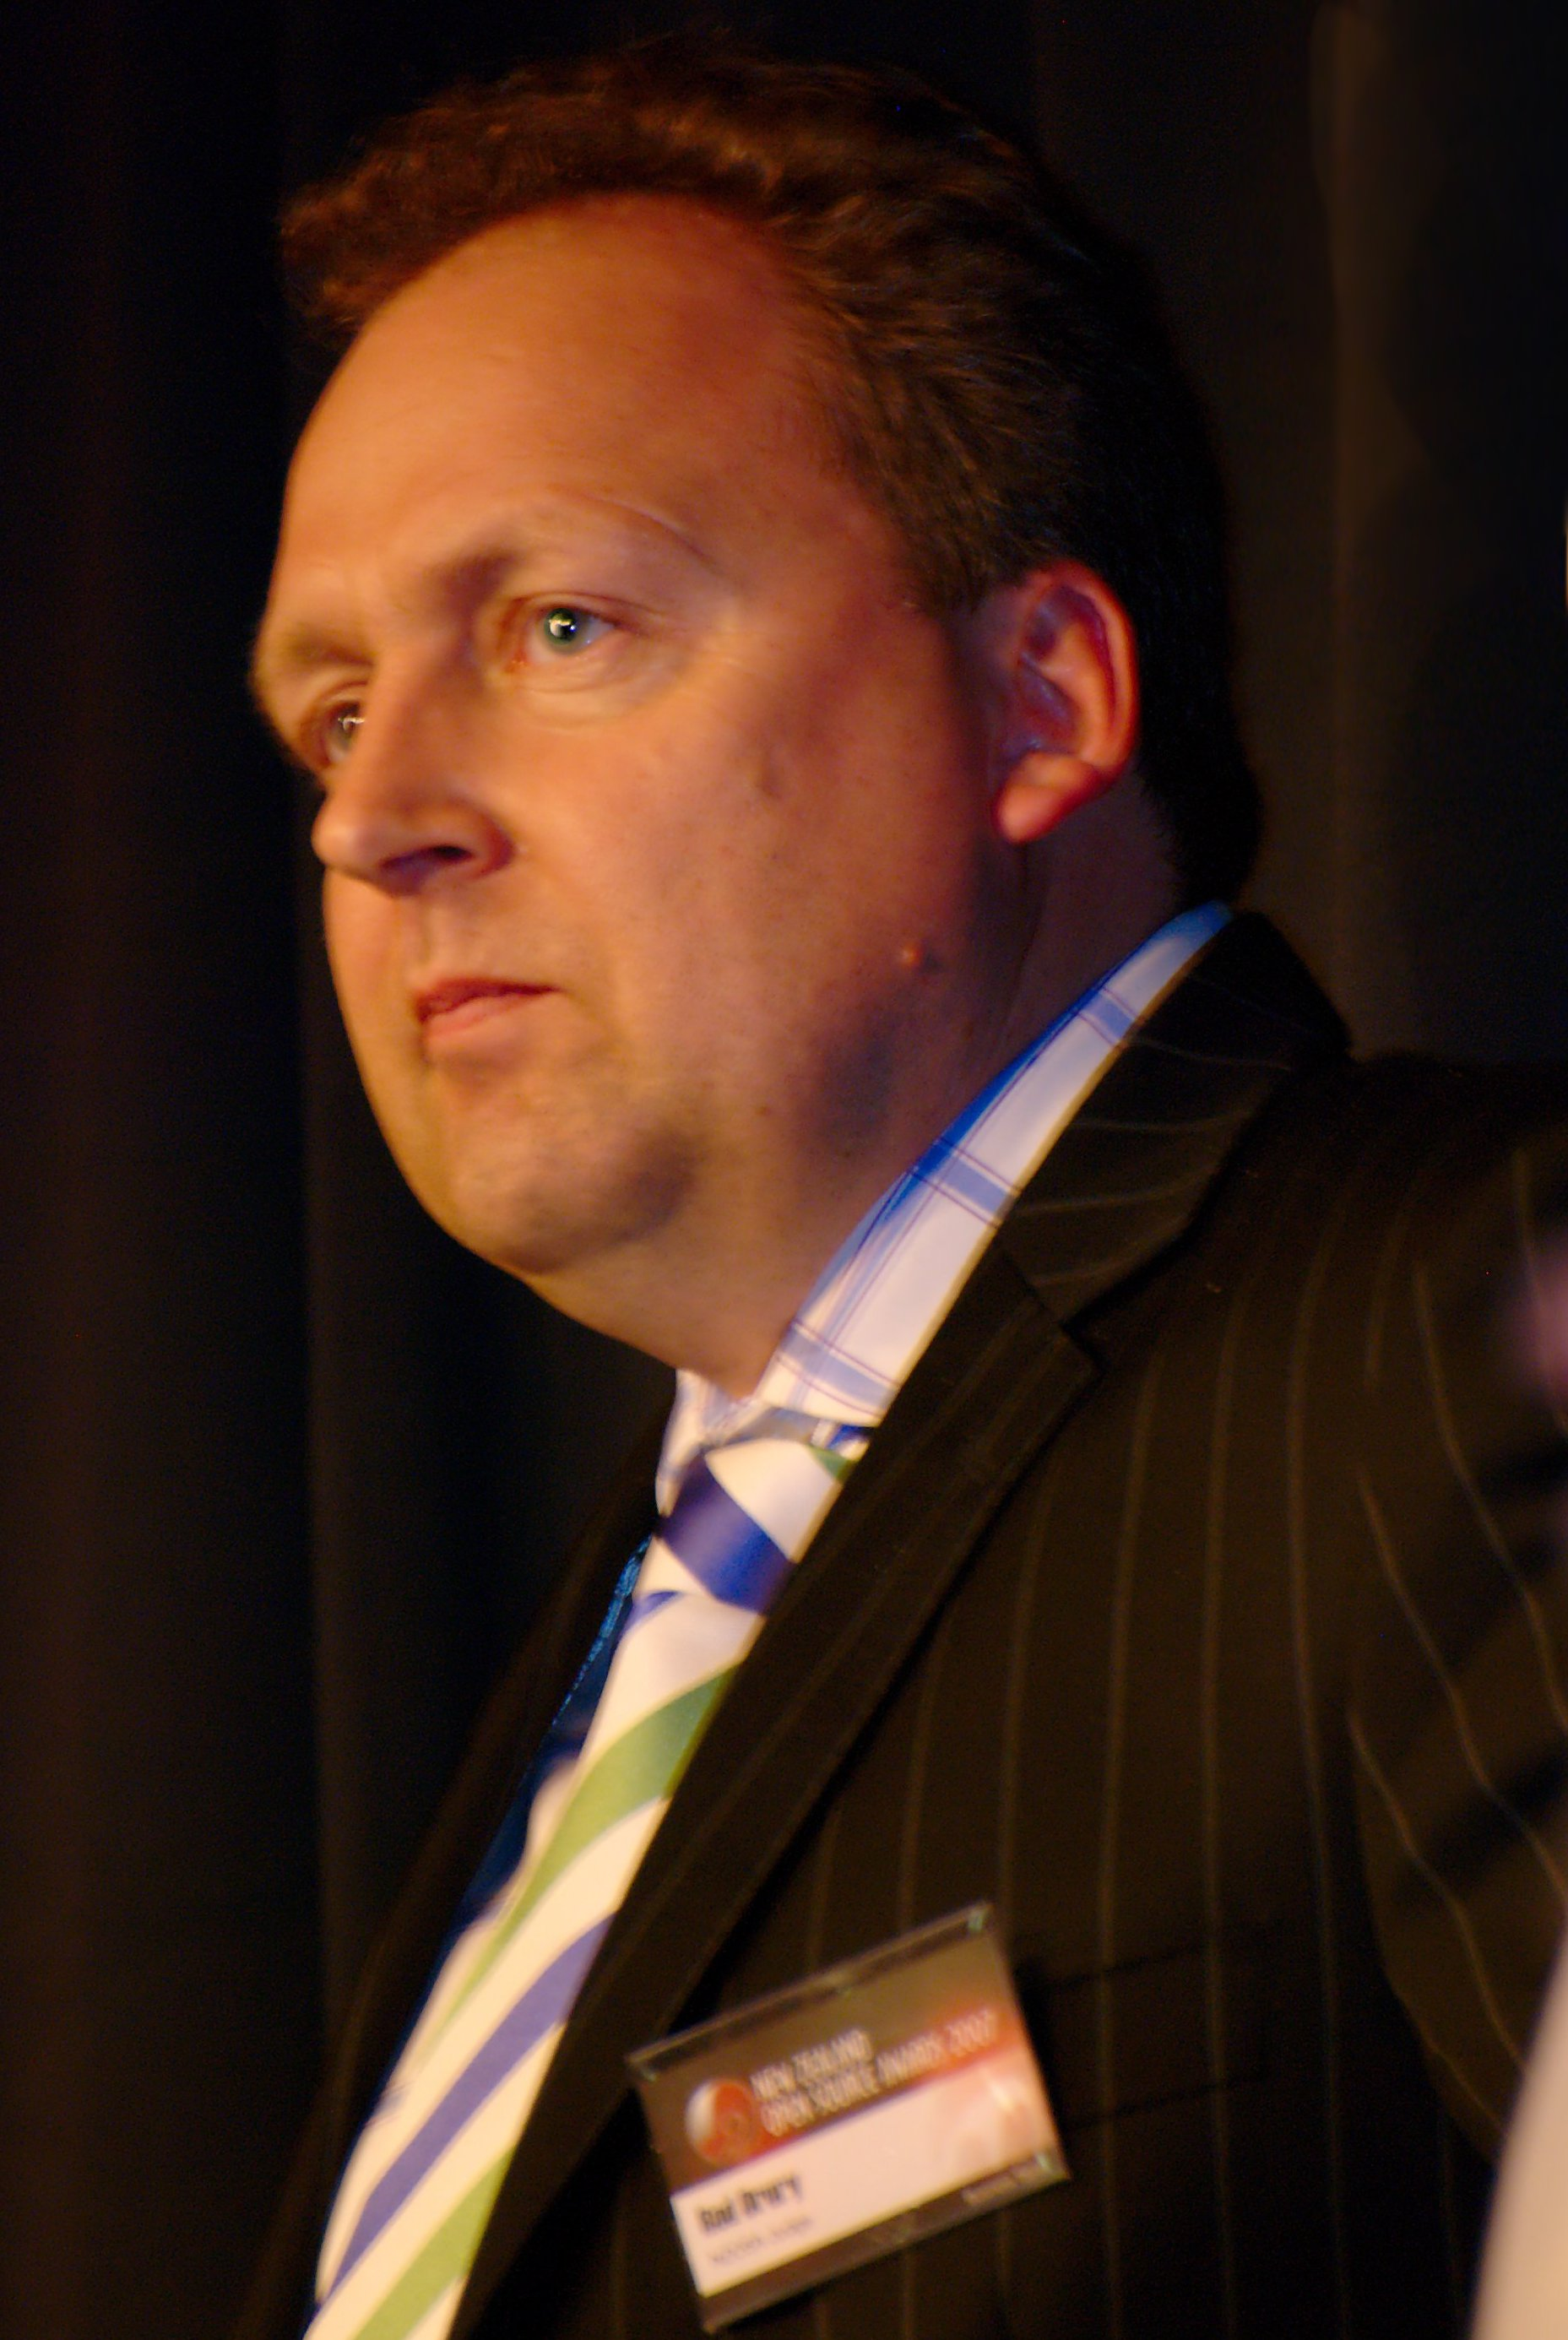 Drury in 2007 at the New Zealand Open Source Awards